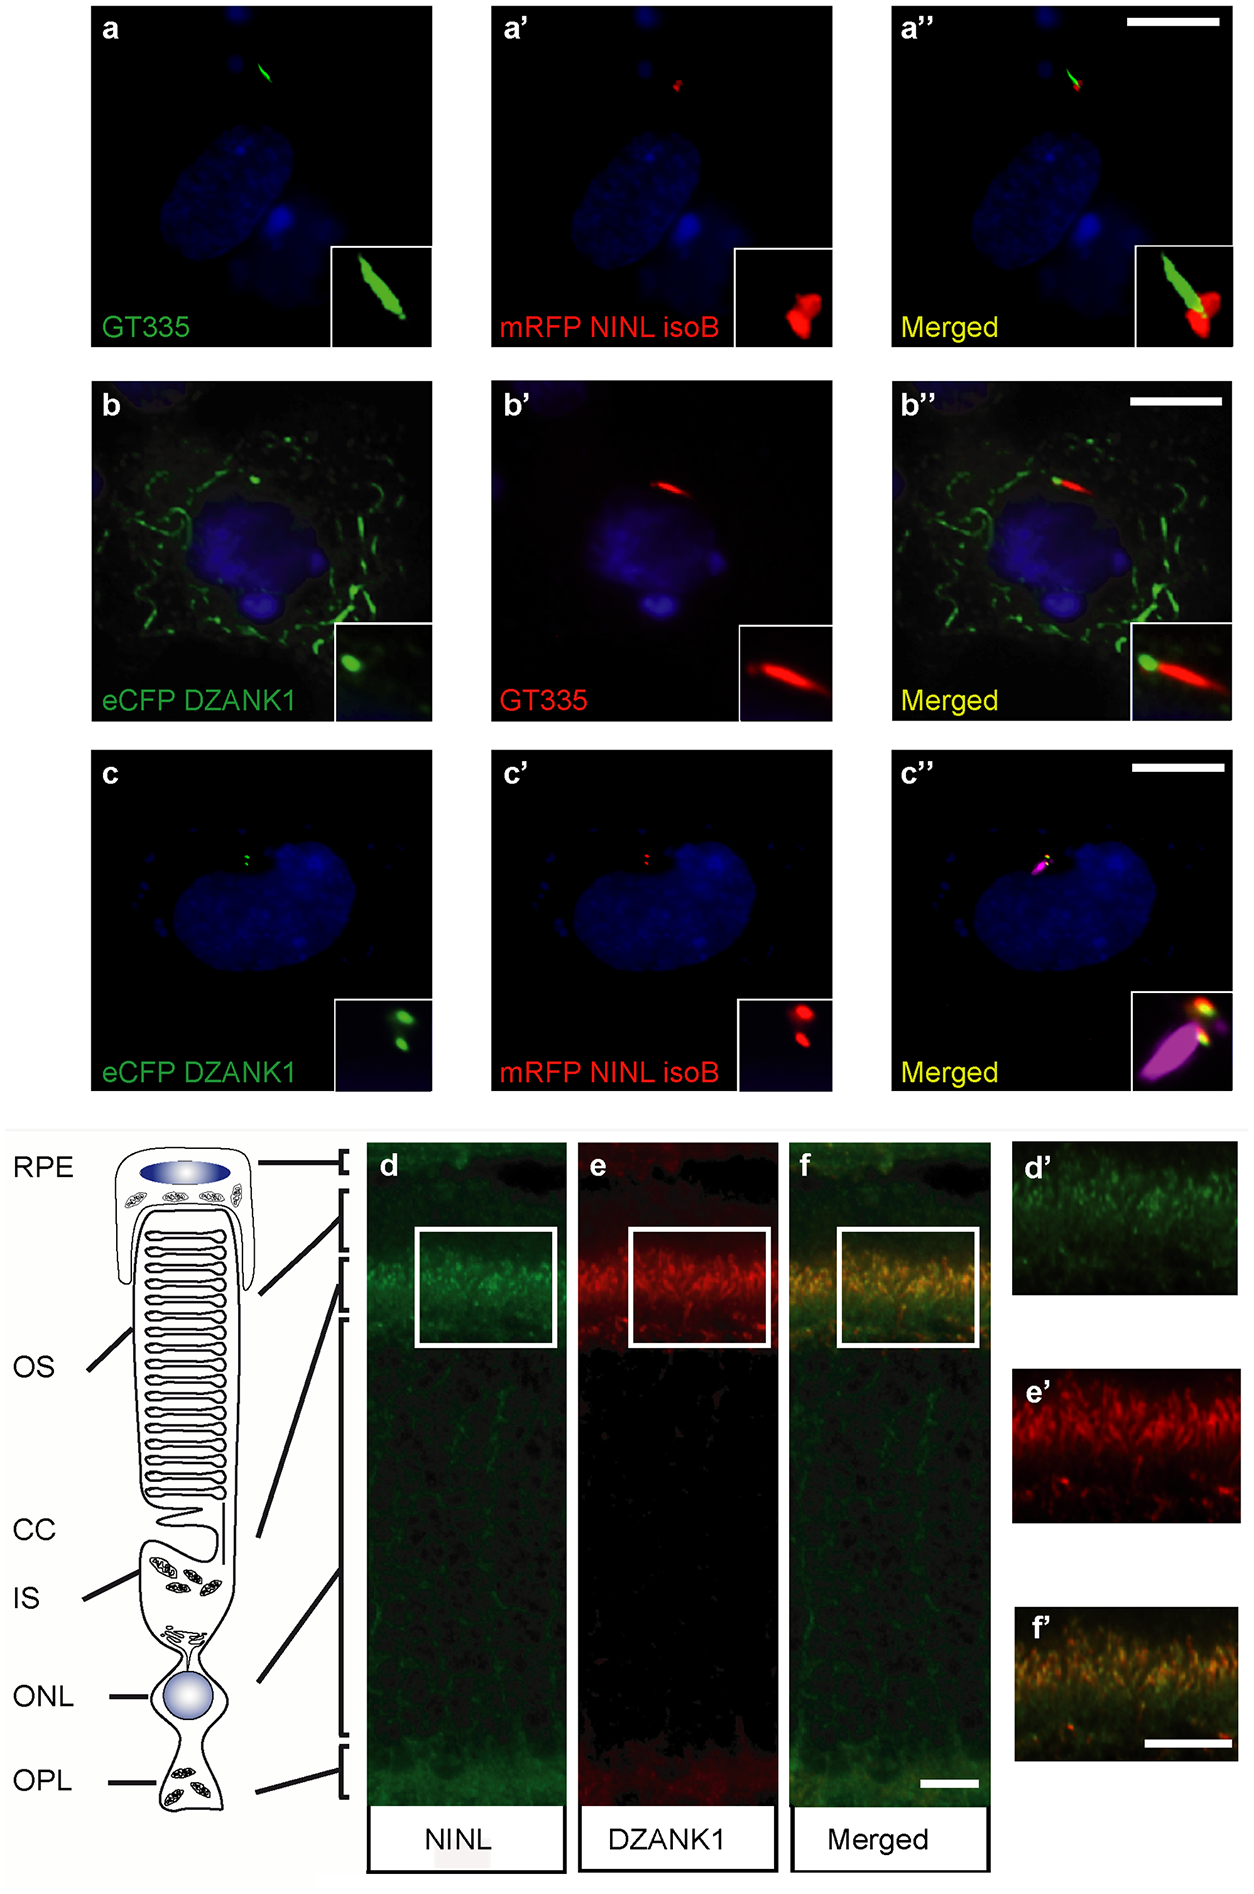 NINL and DZANK1 co-localize at the base of cilia in RPE cells and rat retina.